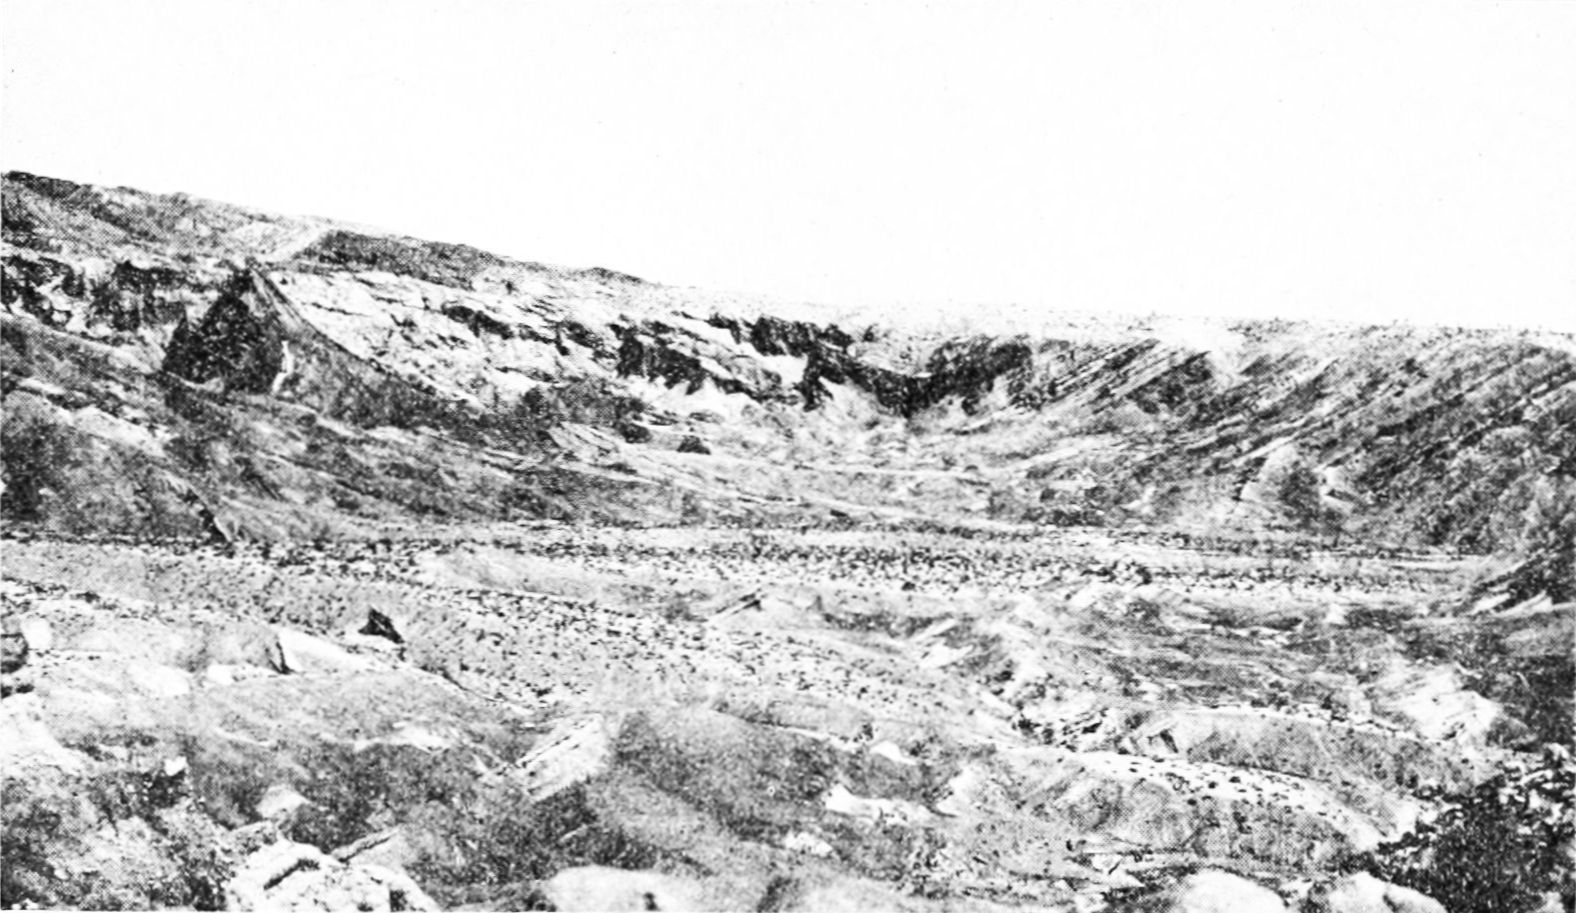 PSM V86 D254 Folded and faulted strata north of barstow.jpg